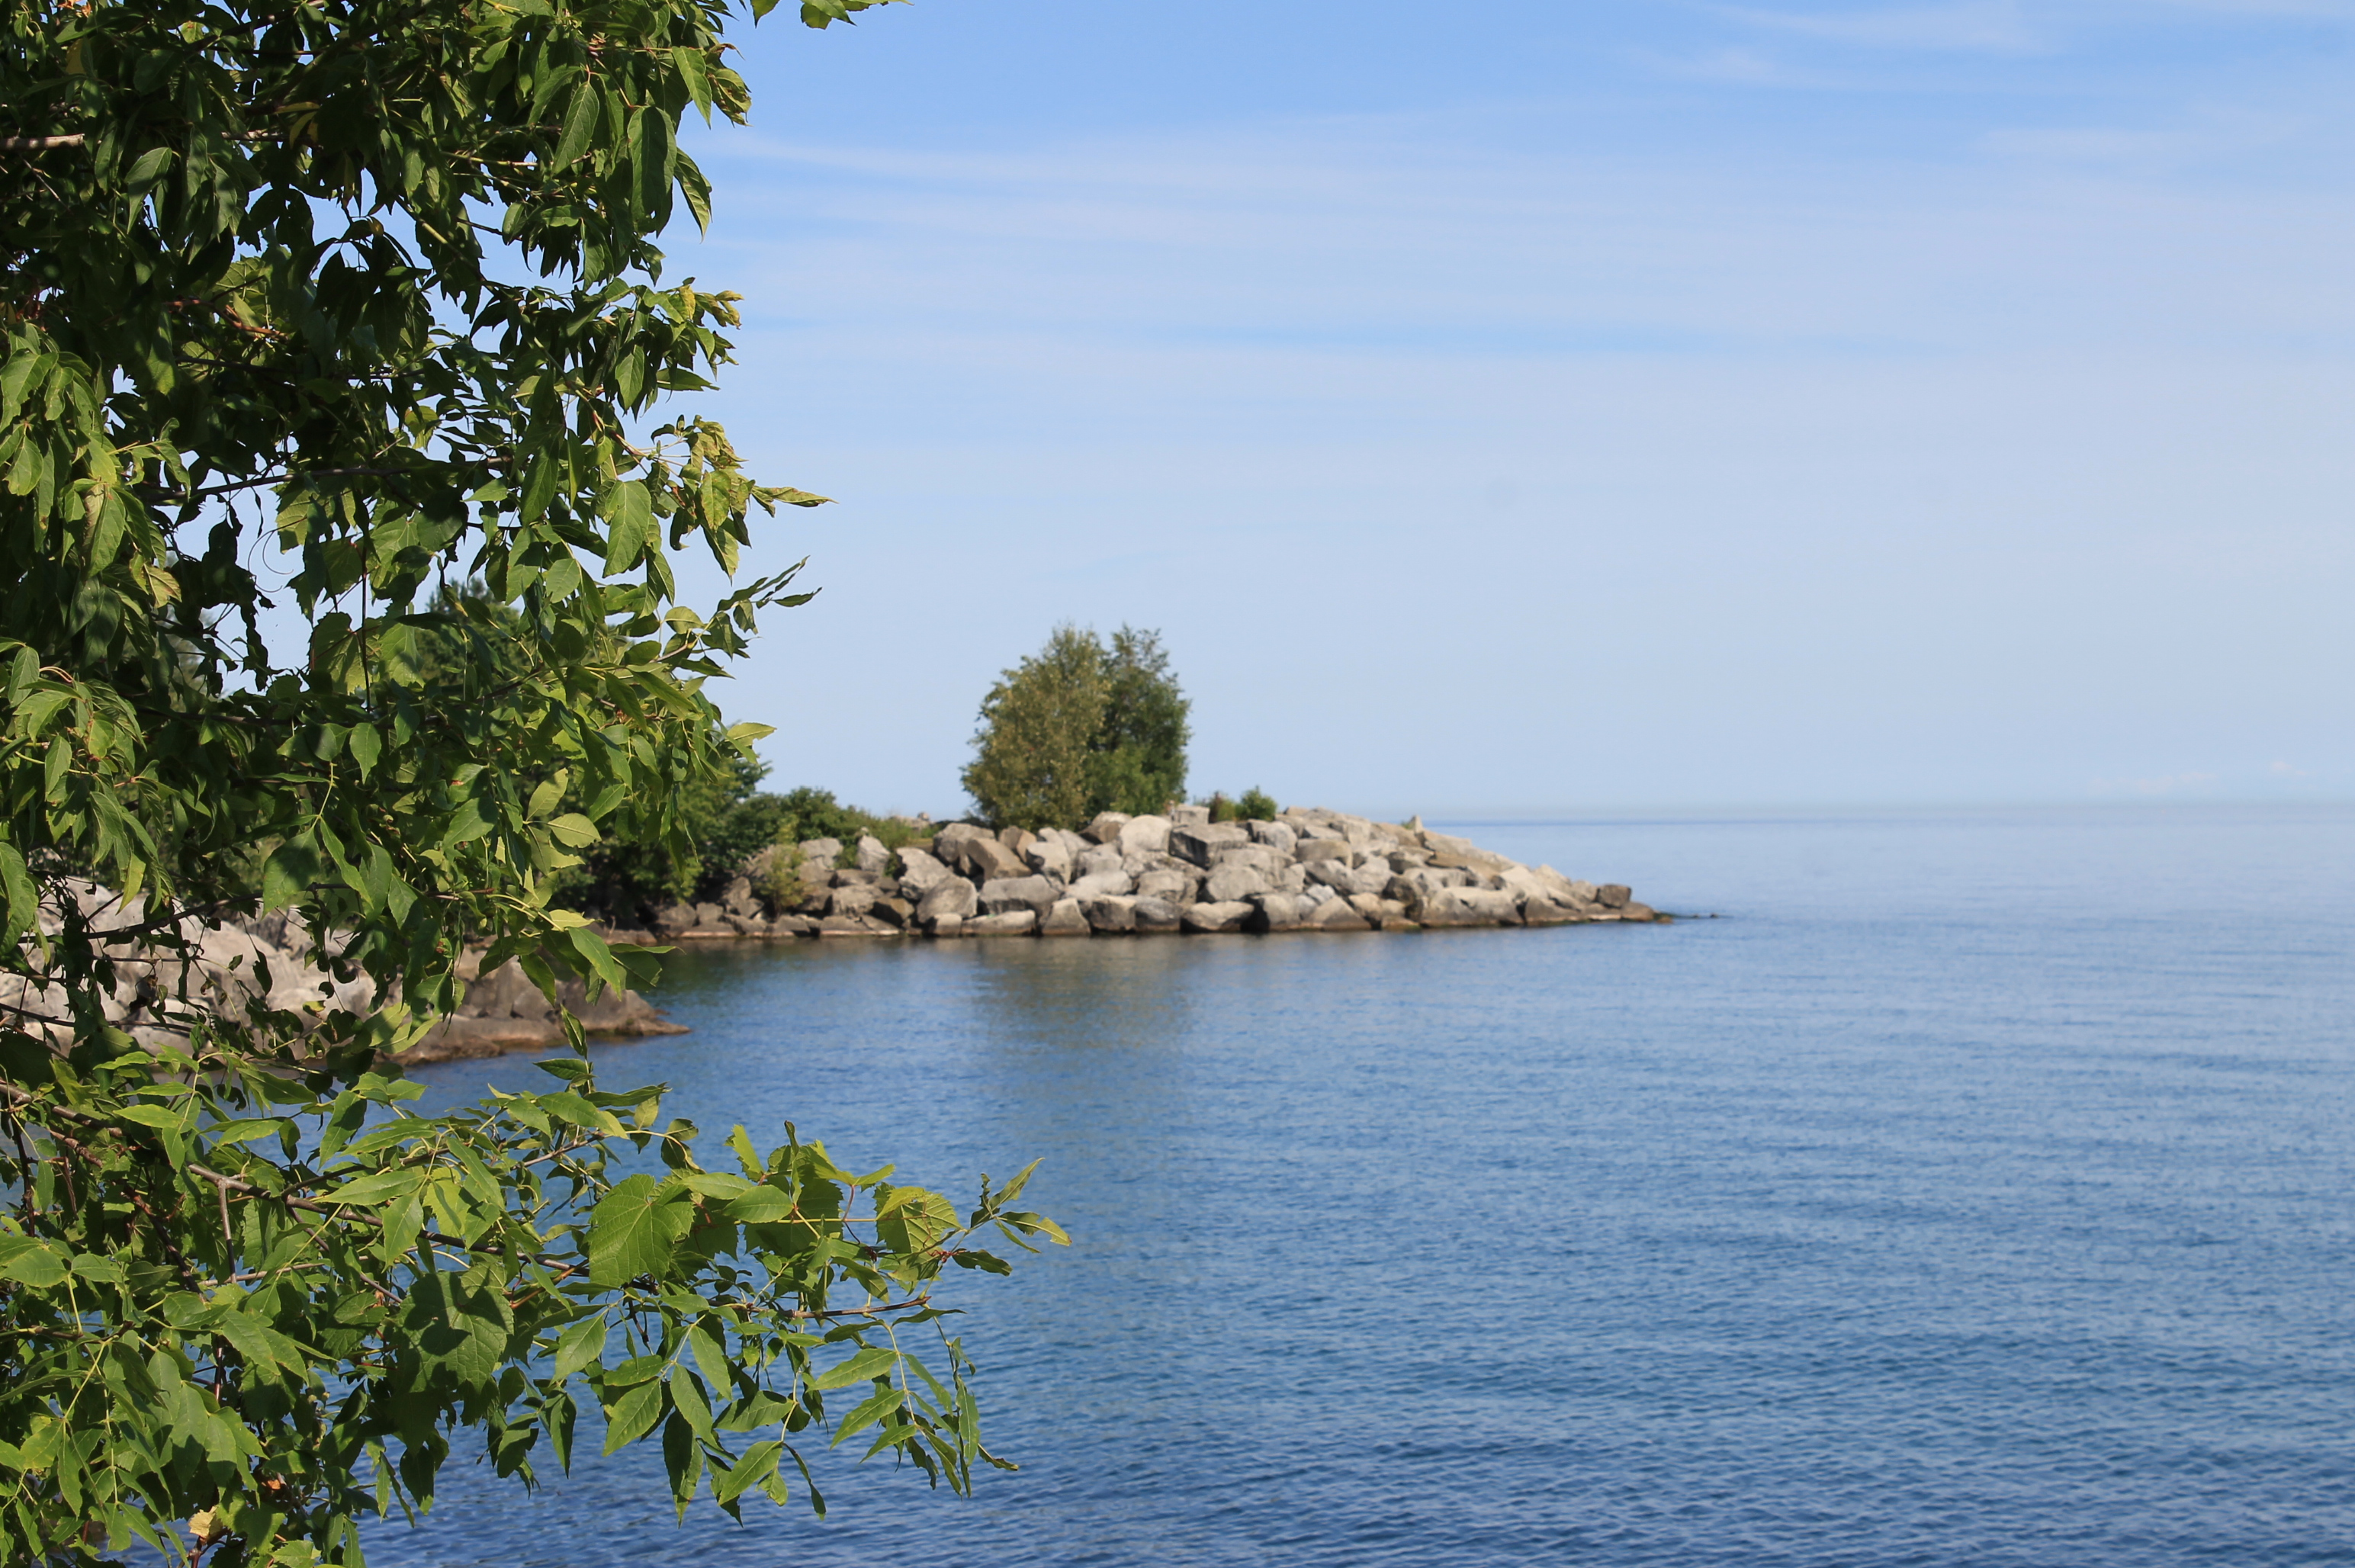 an introduction and history of the lake ontario water Piston cores from deep-water bottom deposits in lake ontario contain shallow-water sediments such as, shell-rich sand and silt, marl, gyttja, and formerly exposed shore deposits including woody.